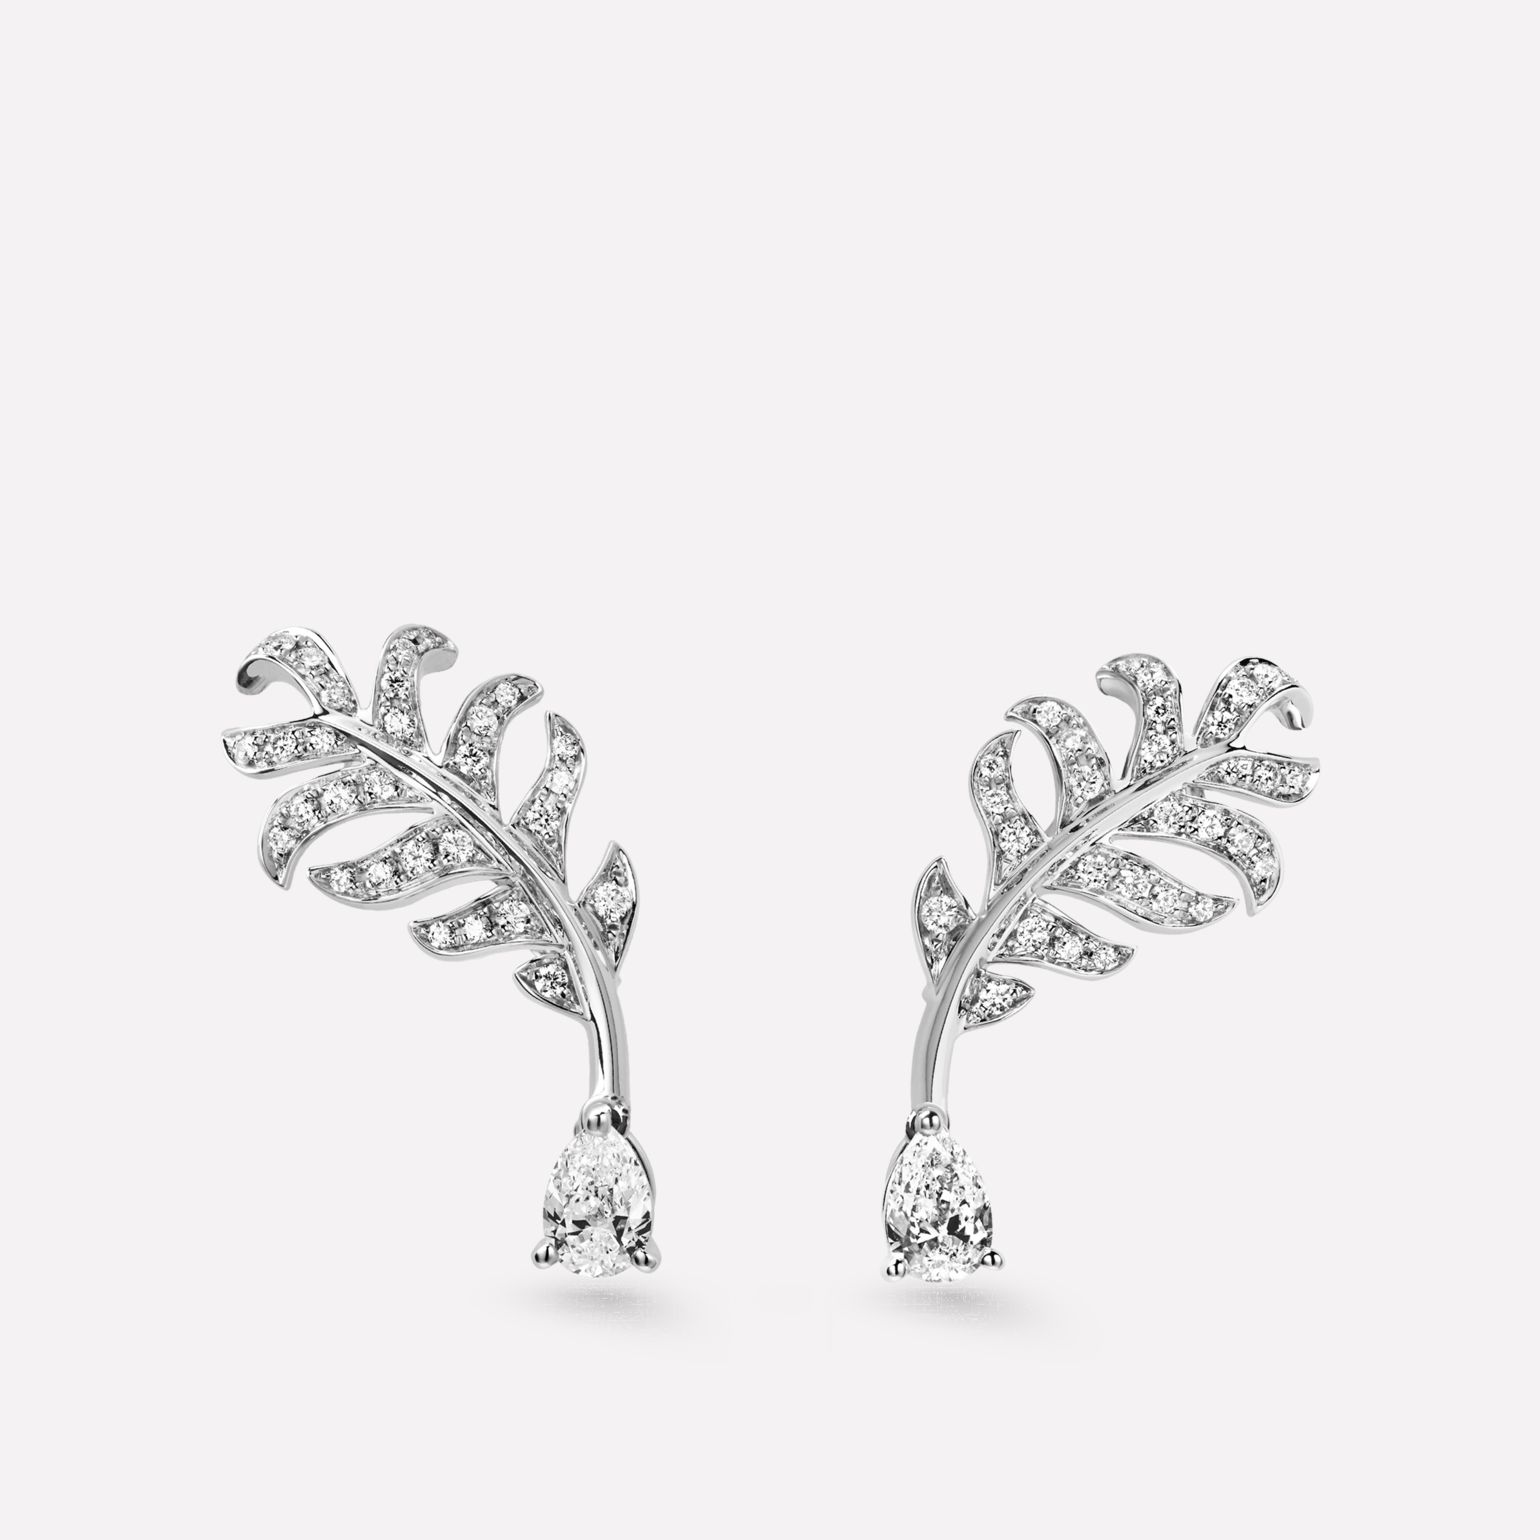 Boucles d'oreilles Plume de CHANEL Motif plume en or blanc 18 carats, diamants et diamants de centre